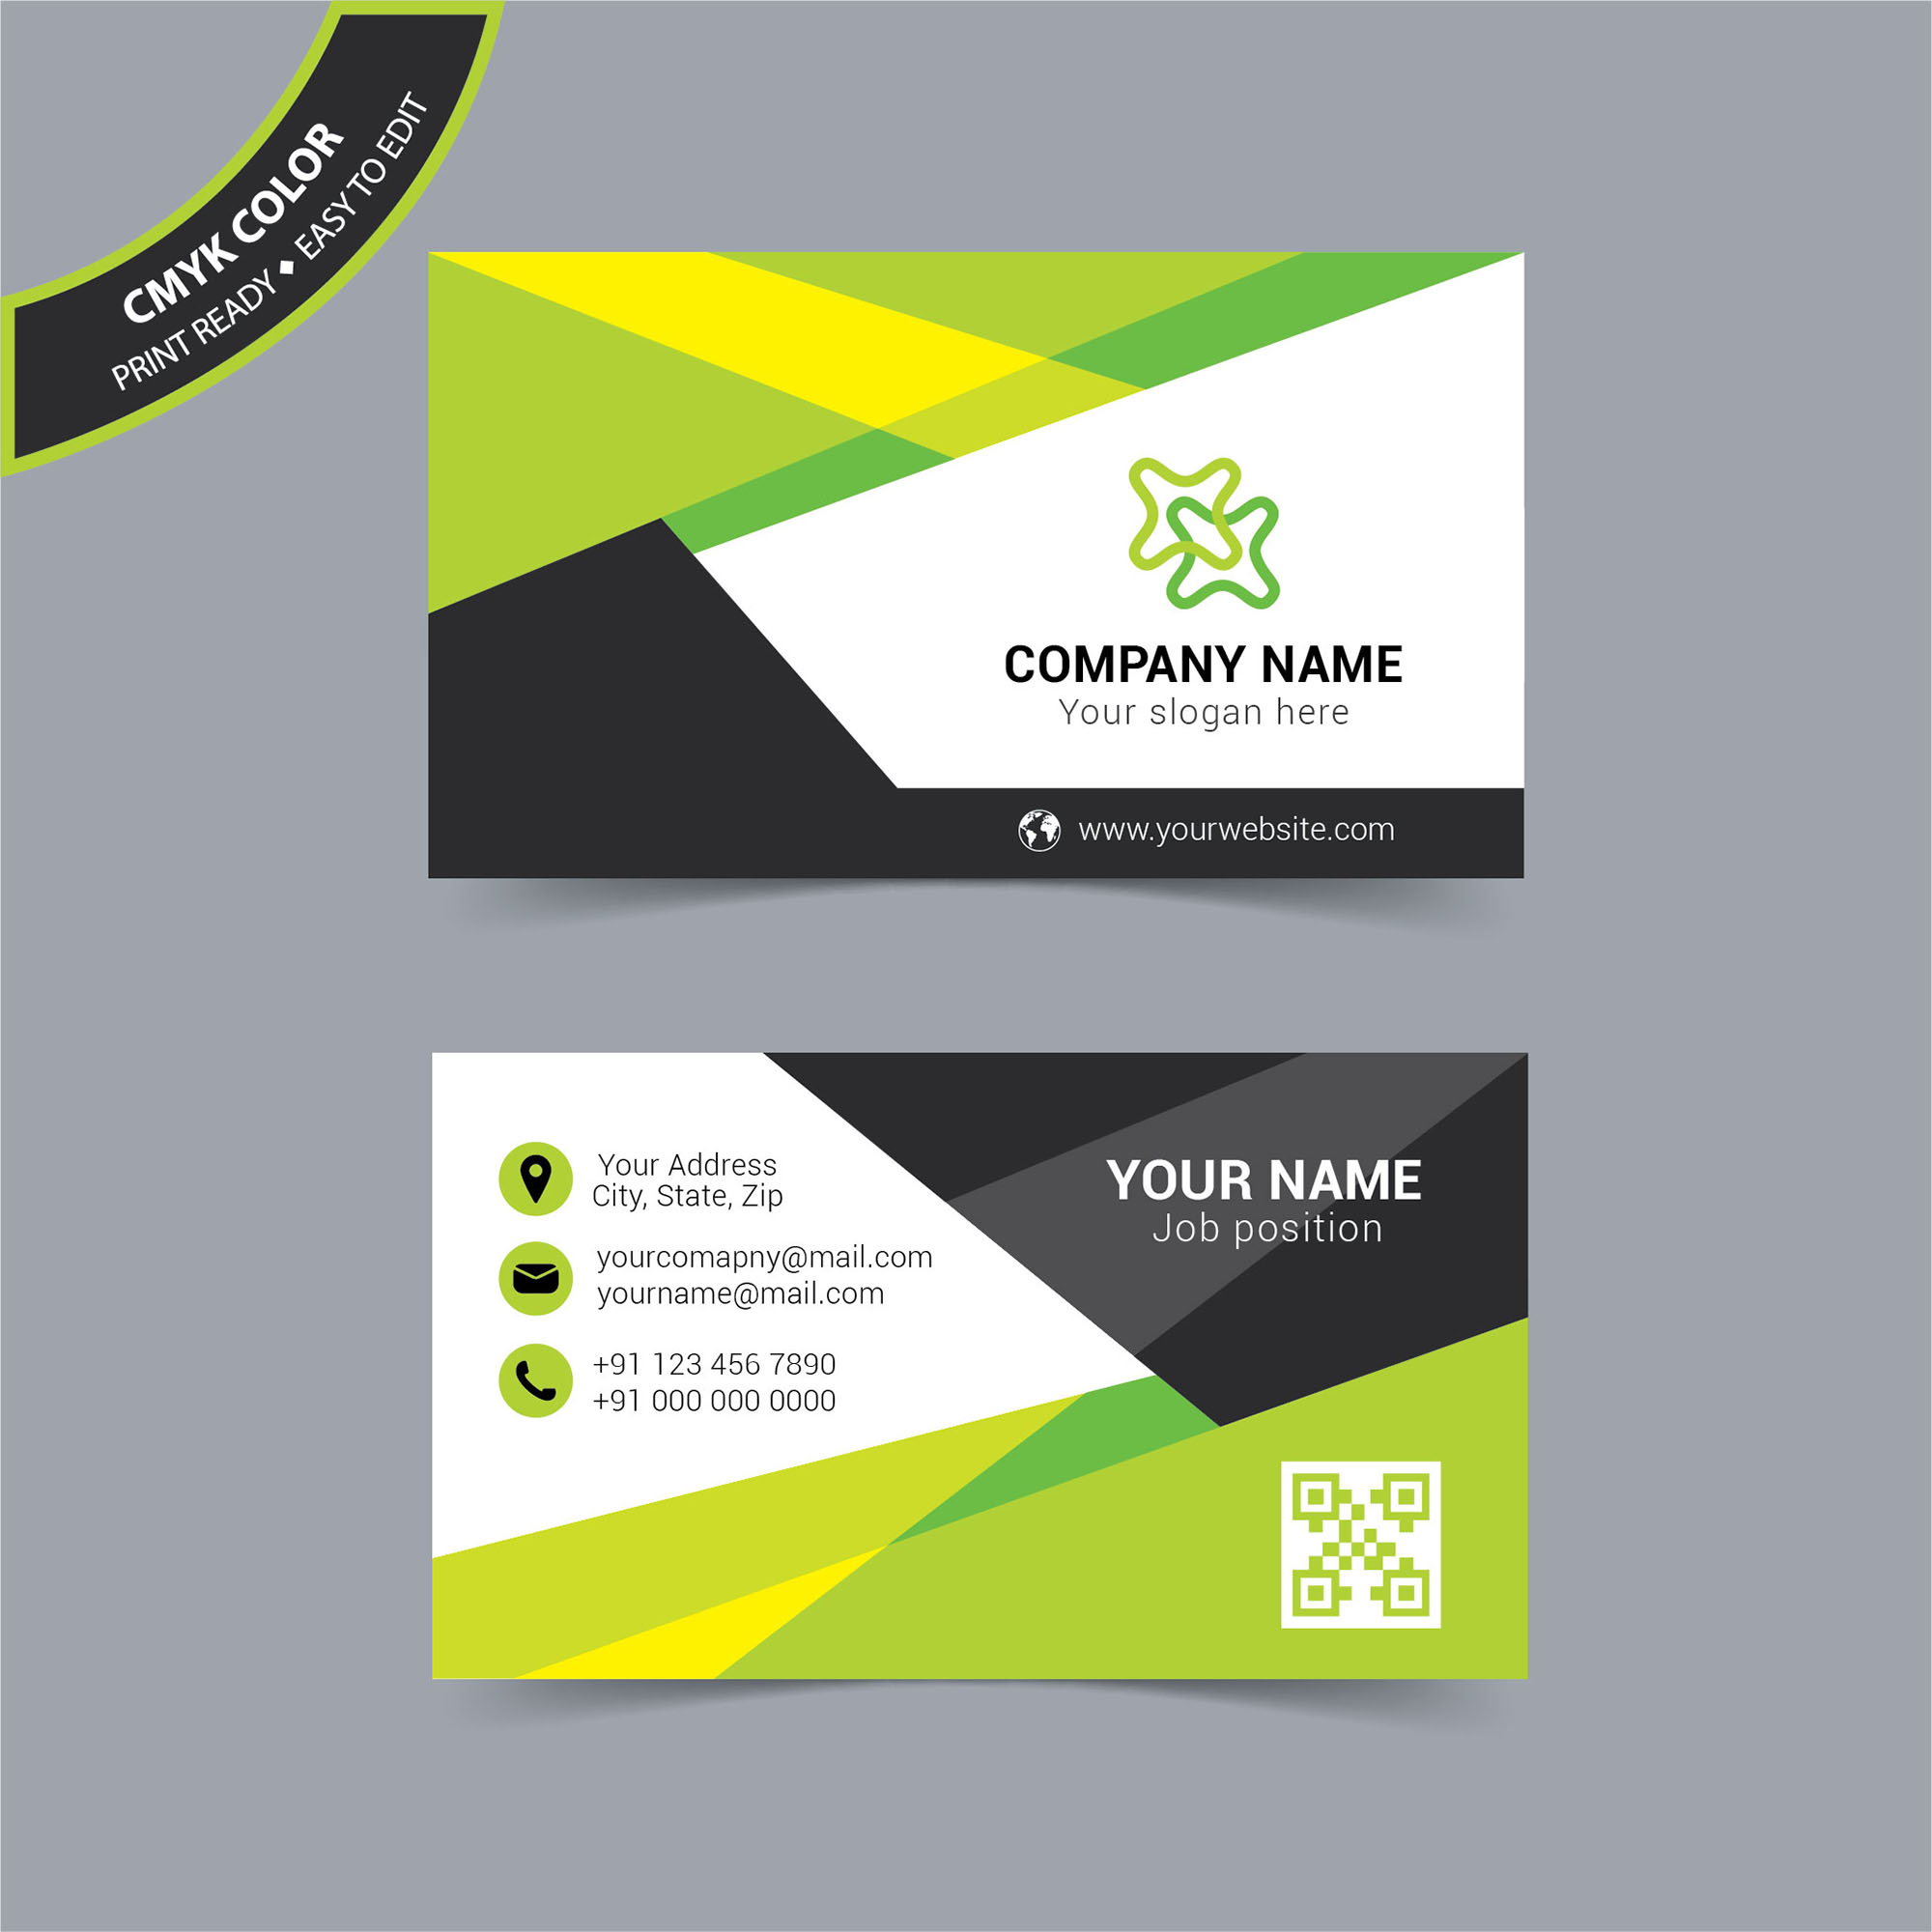 Modern colorful business card design free download wisxi business card business cards business card design business card template design templates cheaphphosting Image collections